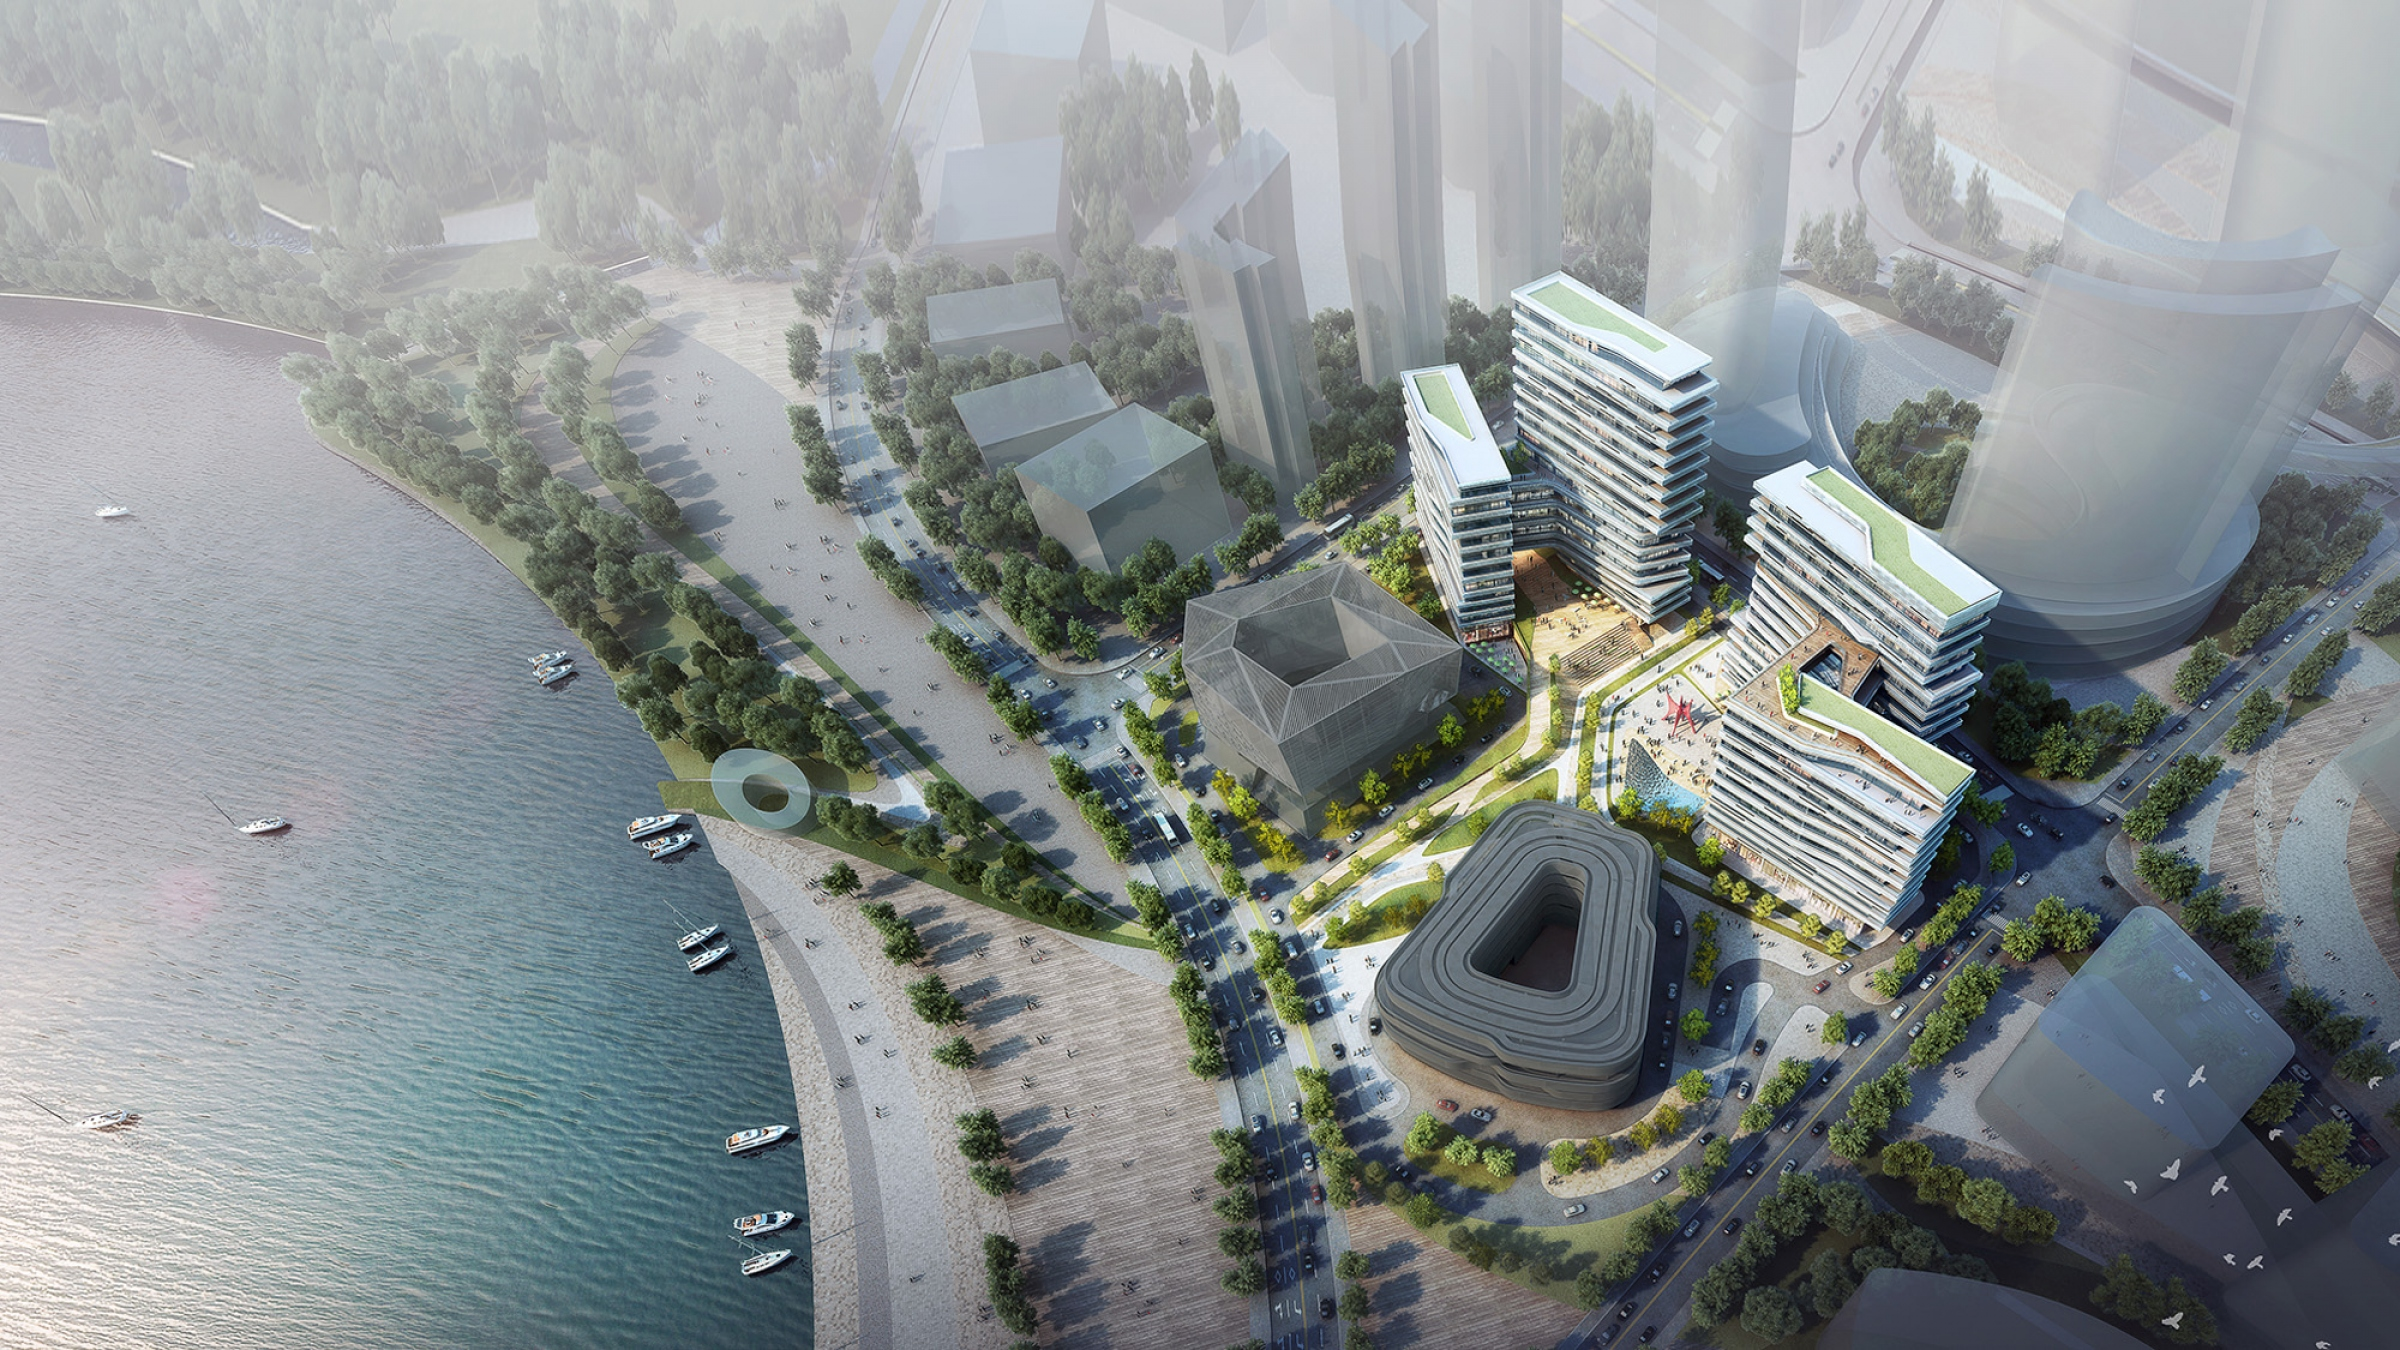 10 Design - High Technology District Commercial Hub